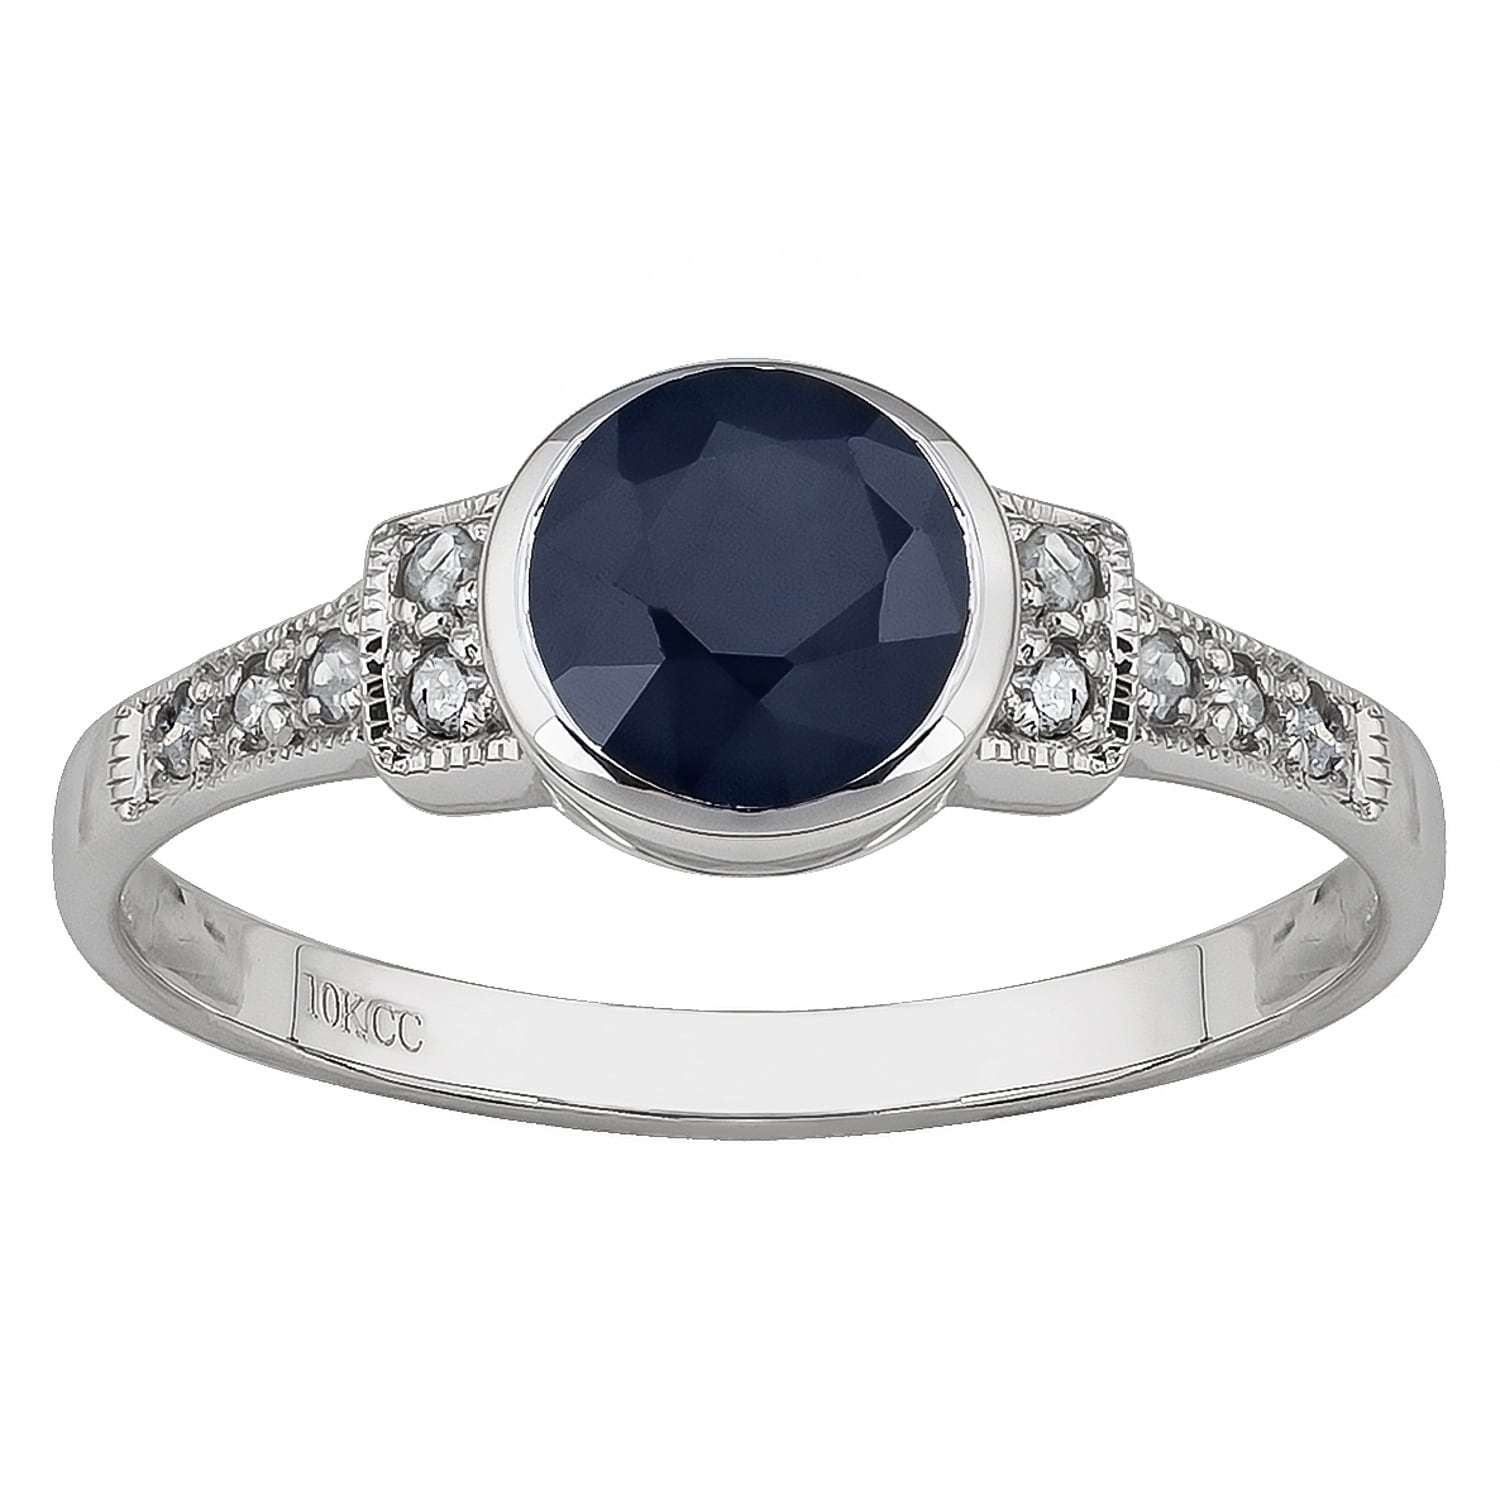 Shop Viducci 10K White Gold Vintage Style Genuine Sapphire And Pertaining To 2018 Vintage Style Sapphire Engagement Rings (View 6 of 15)